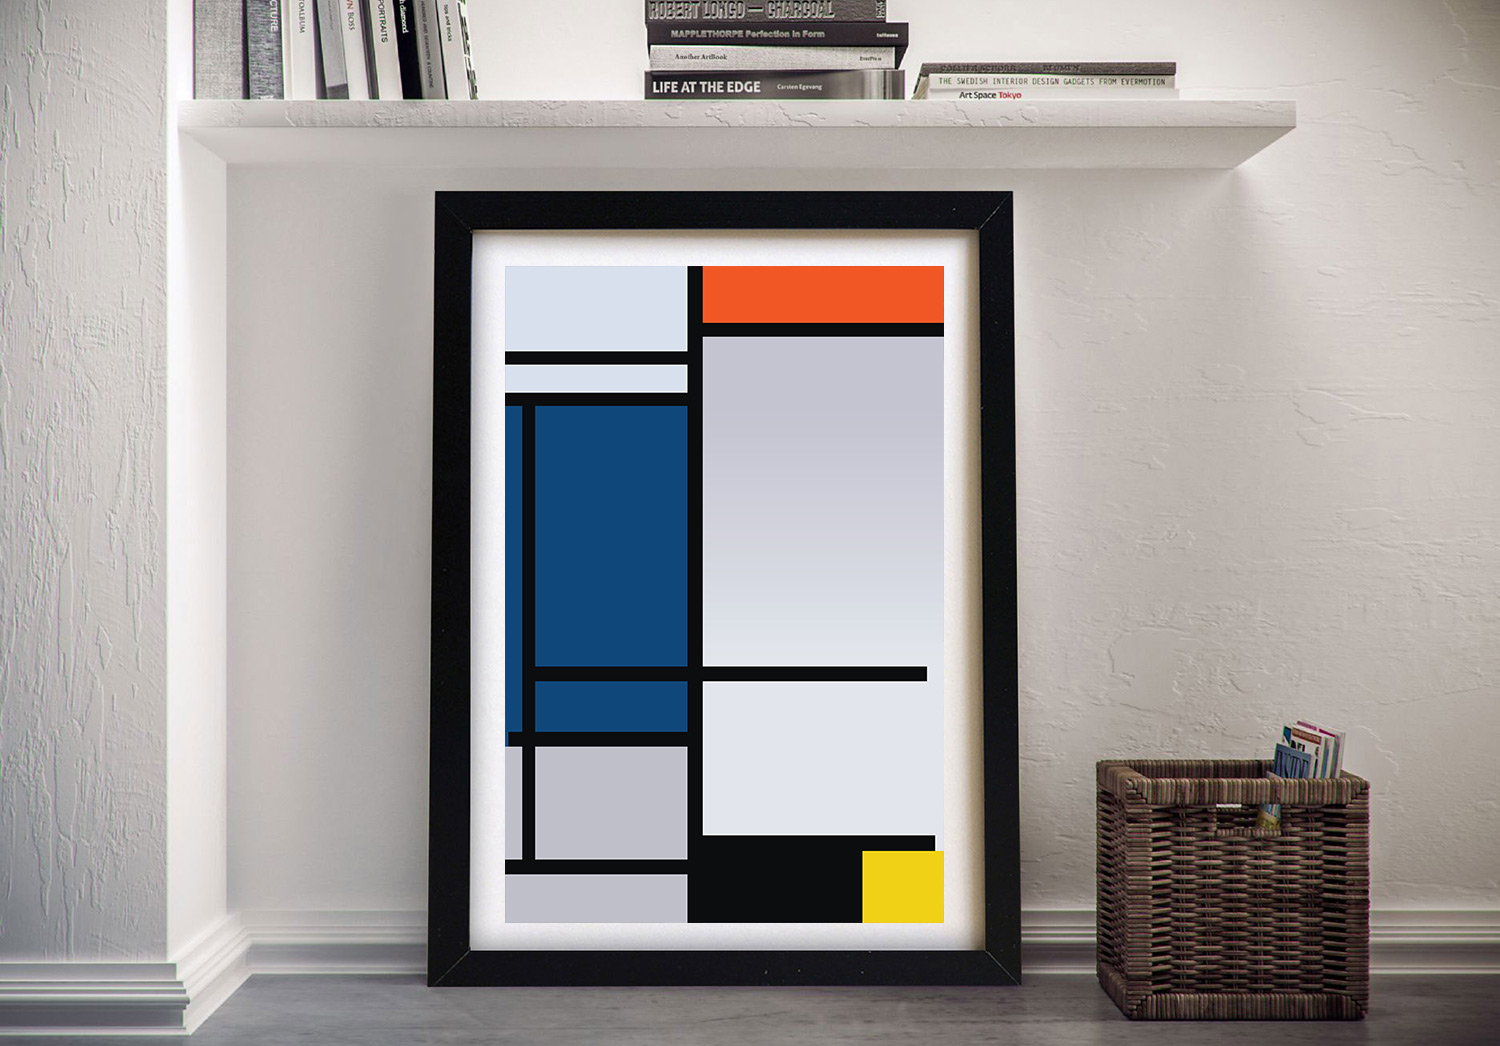 Mondrian Wall Piet Mondrian Composition Cheap Wall Art Canvis